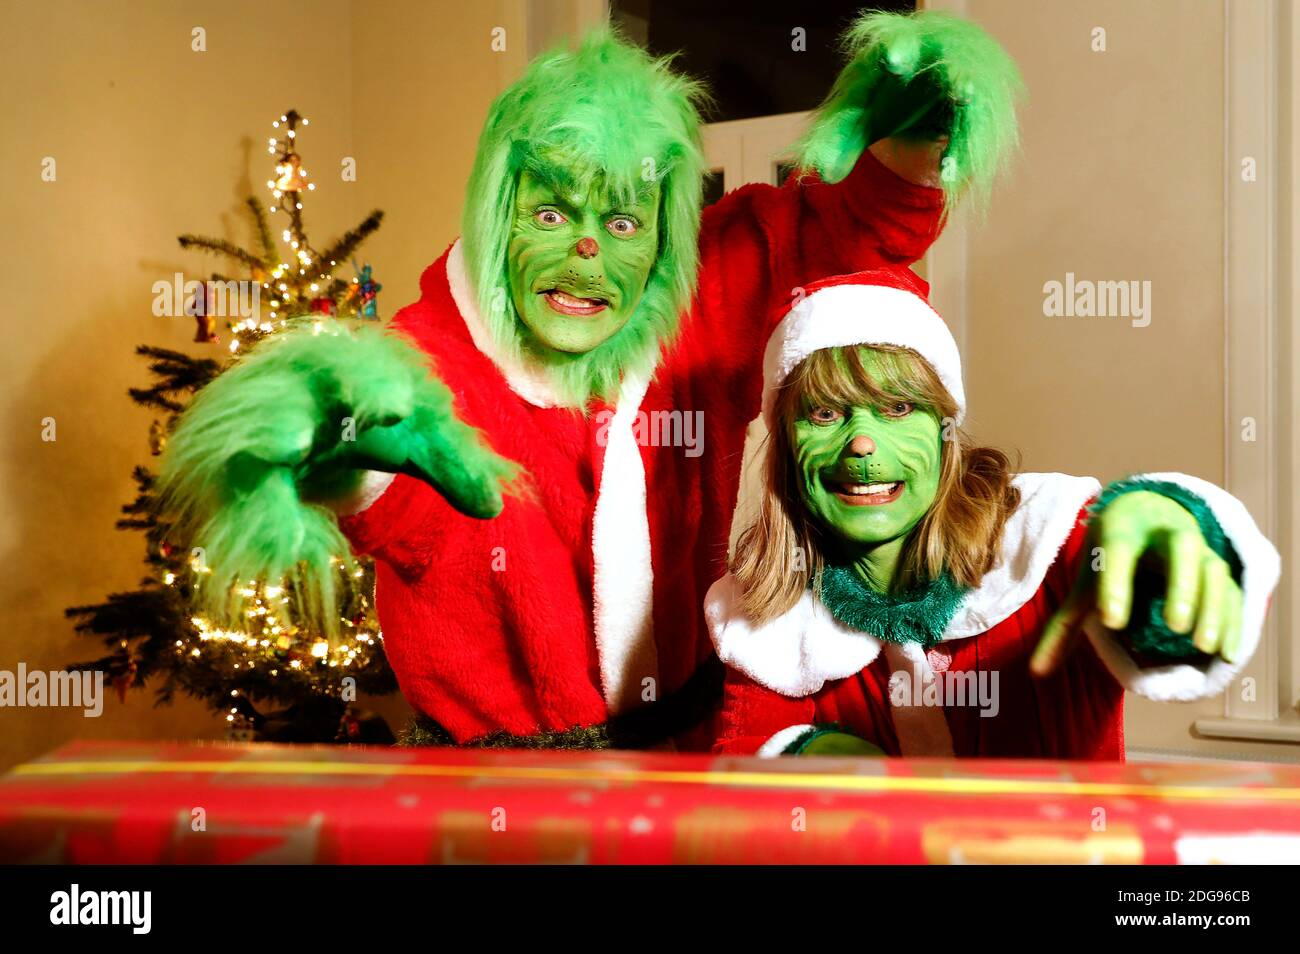 GEEK ART - Bodypainting and Transformaking: 'The Grinch Steals Christmas' photoshooting with Enrico Lein as Grinch and Maria Skupin as Mme Grinch at Villa Czarnecki in Hameln on December 7, 2020 - UN projet du photographe Tschiponnique Skupin et du peintre du corps Enrico Lein Banque D'Images